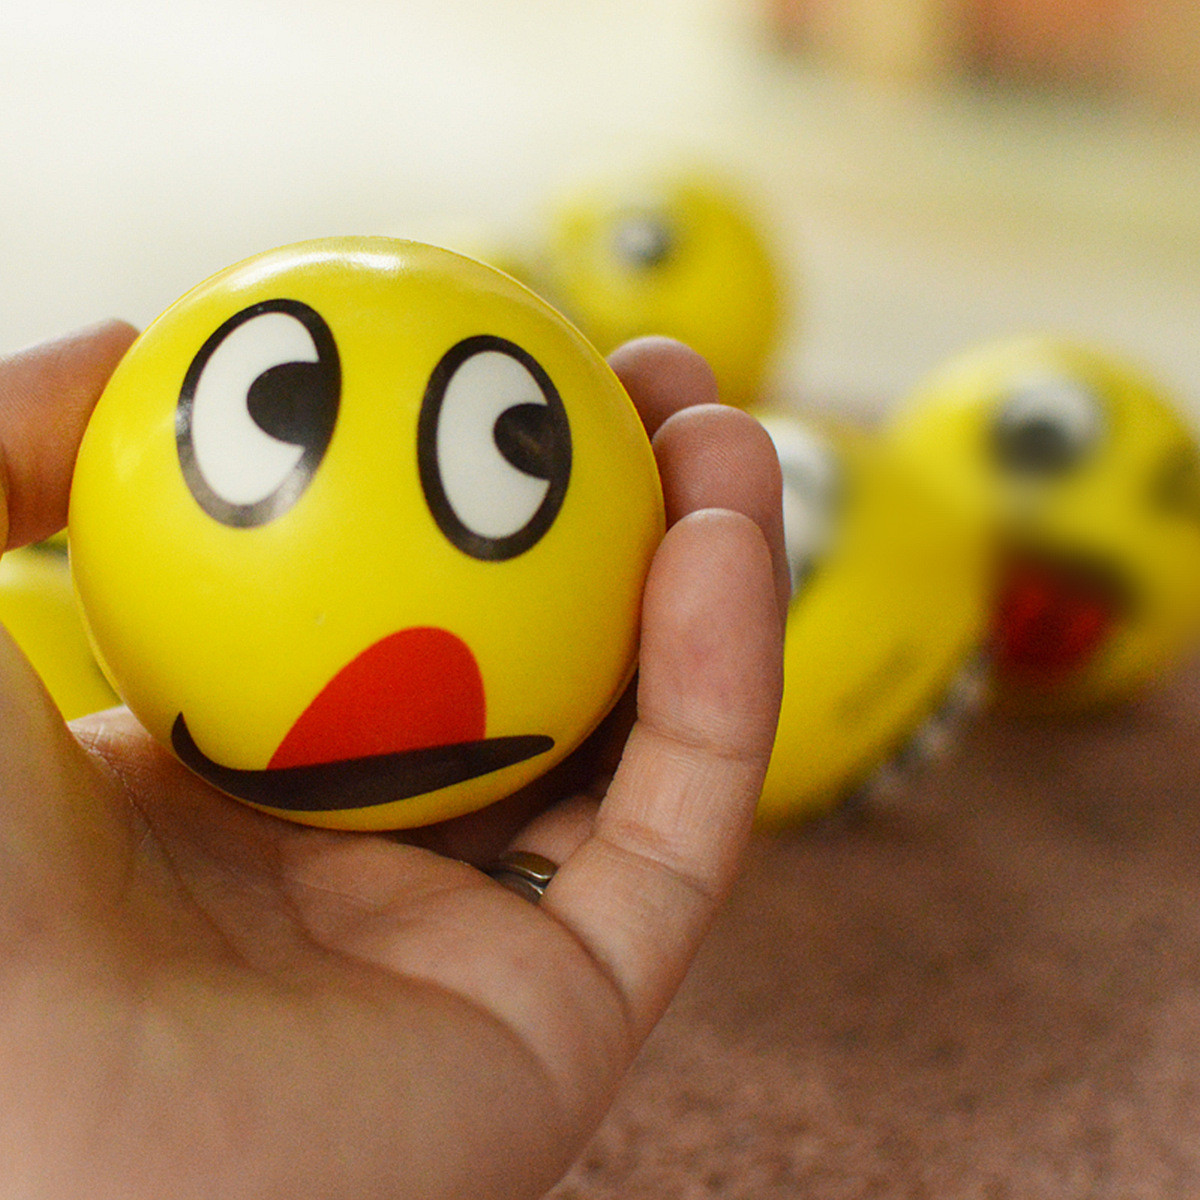 Squishy Foam And Stress Ball Emoji : Squishy Emoji Smiley Face Anti Stress Relief Autism Mood Squeeze Ball Reliever Toy Sale ...